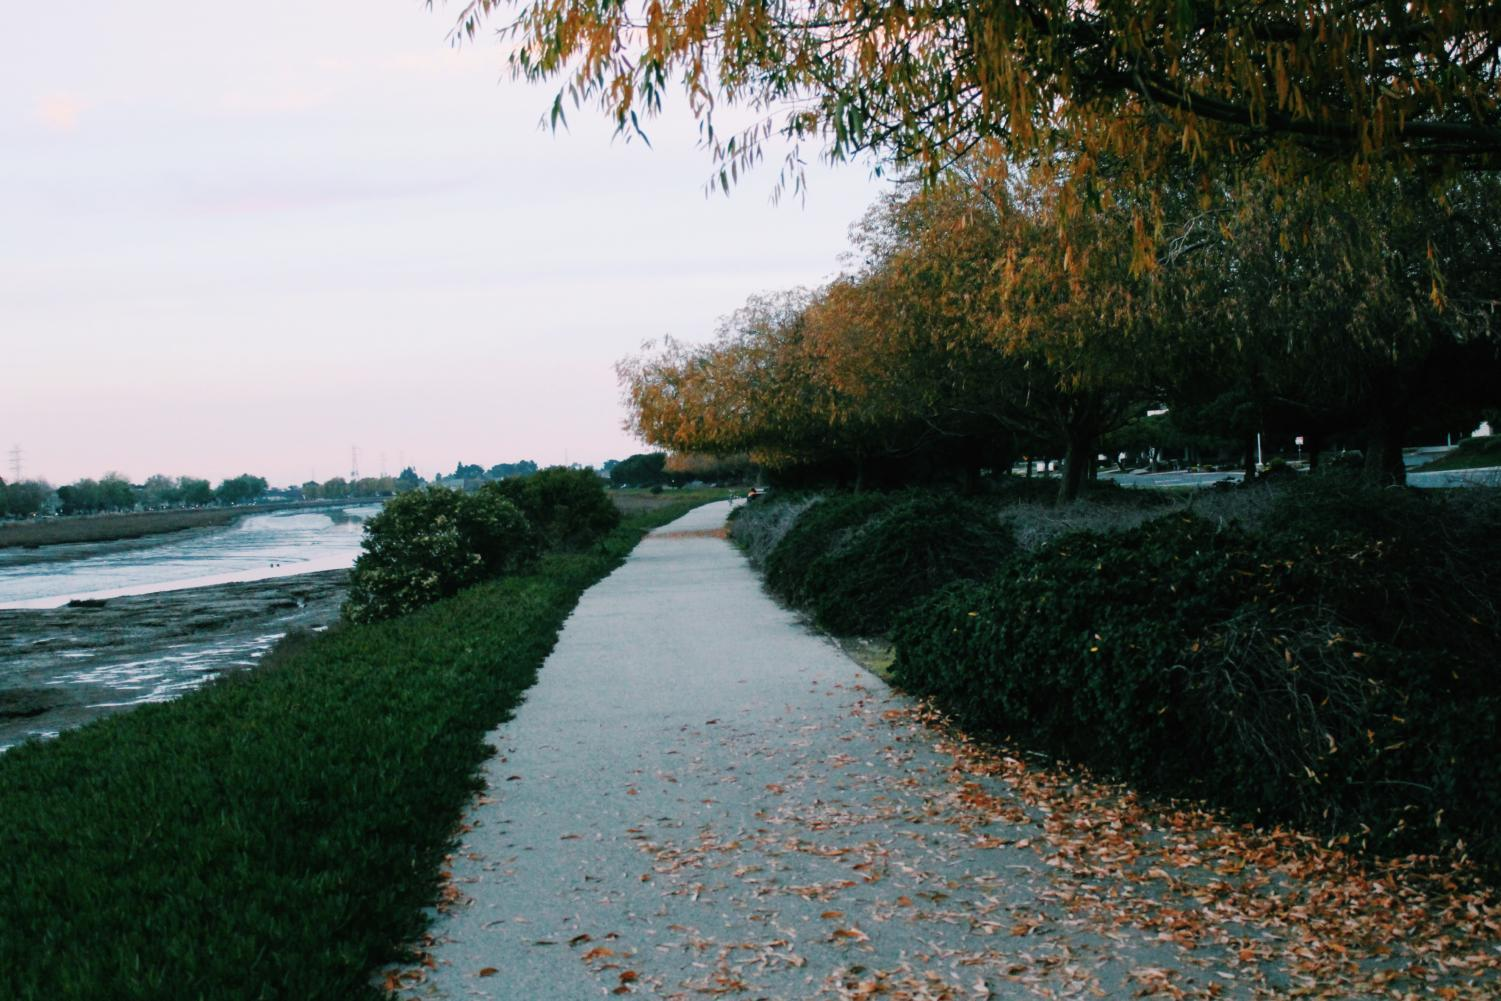 The bay trail is a great place to get outside. The trail runs alongside the San Francisco bay.